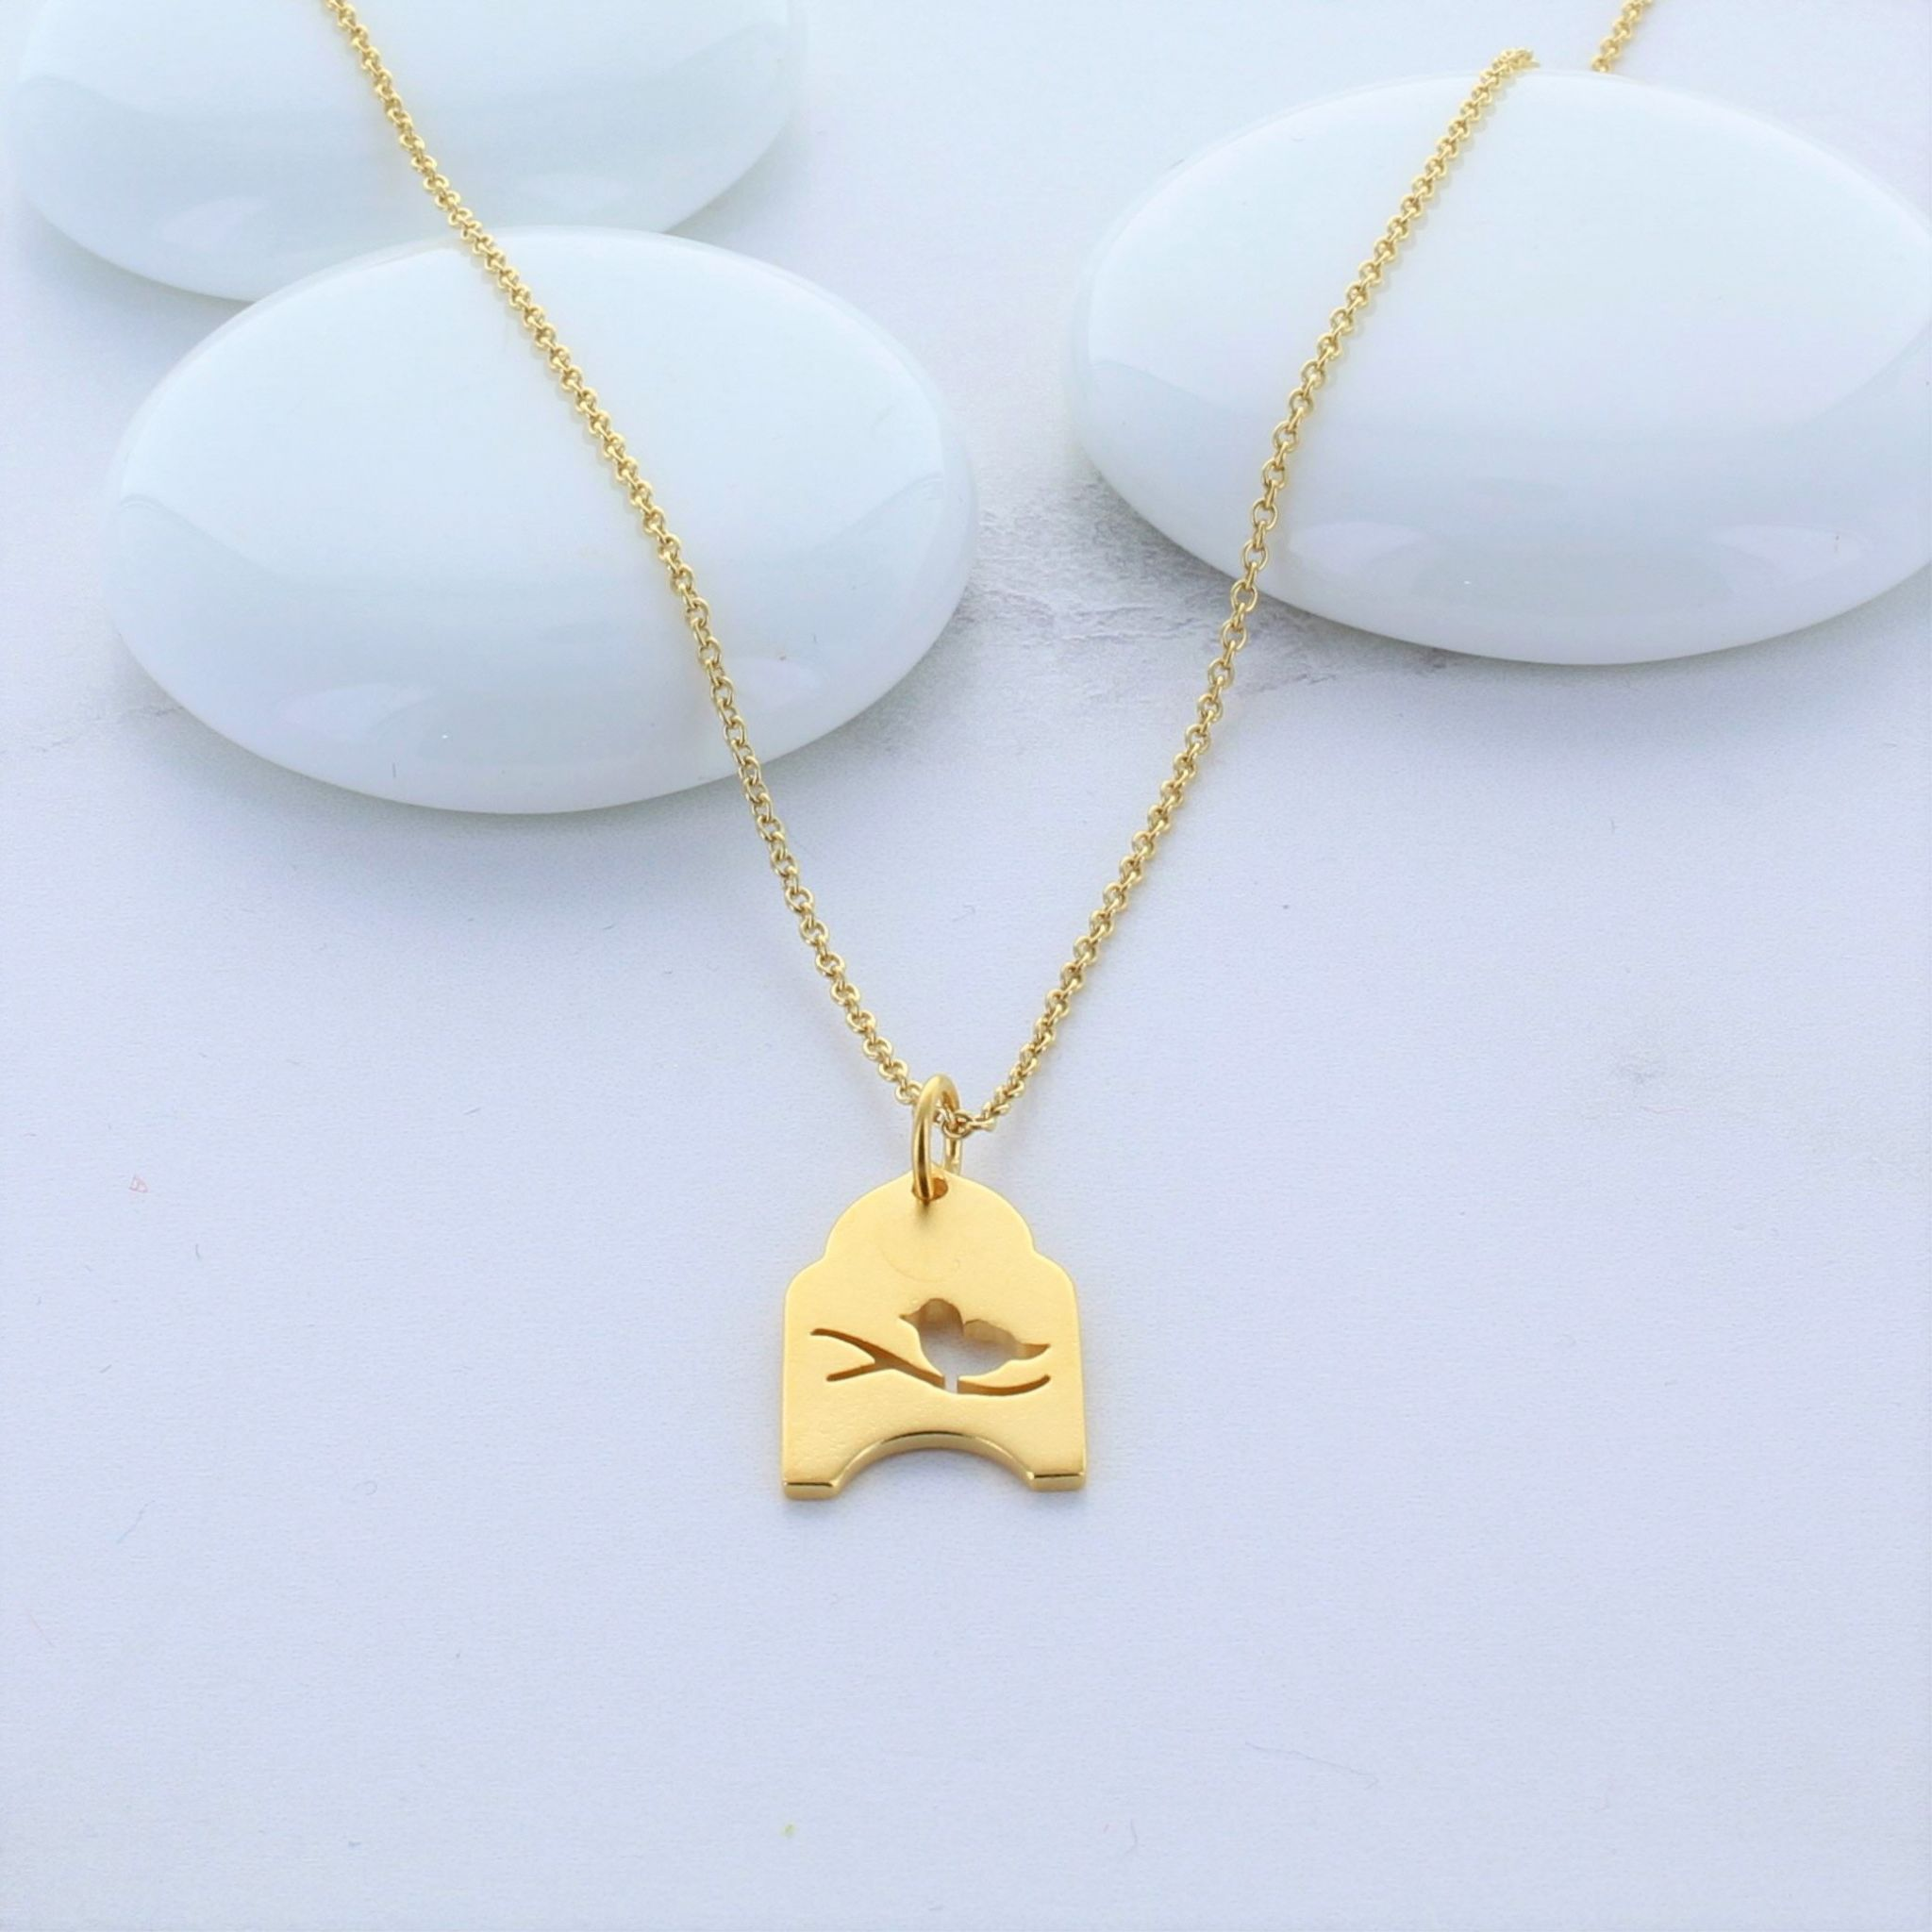 gold s bird necklace friend best claire set pendant